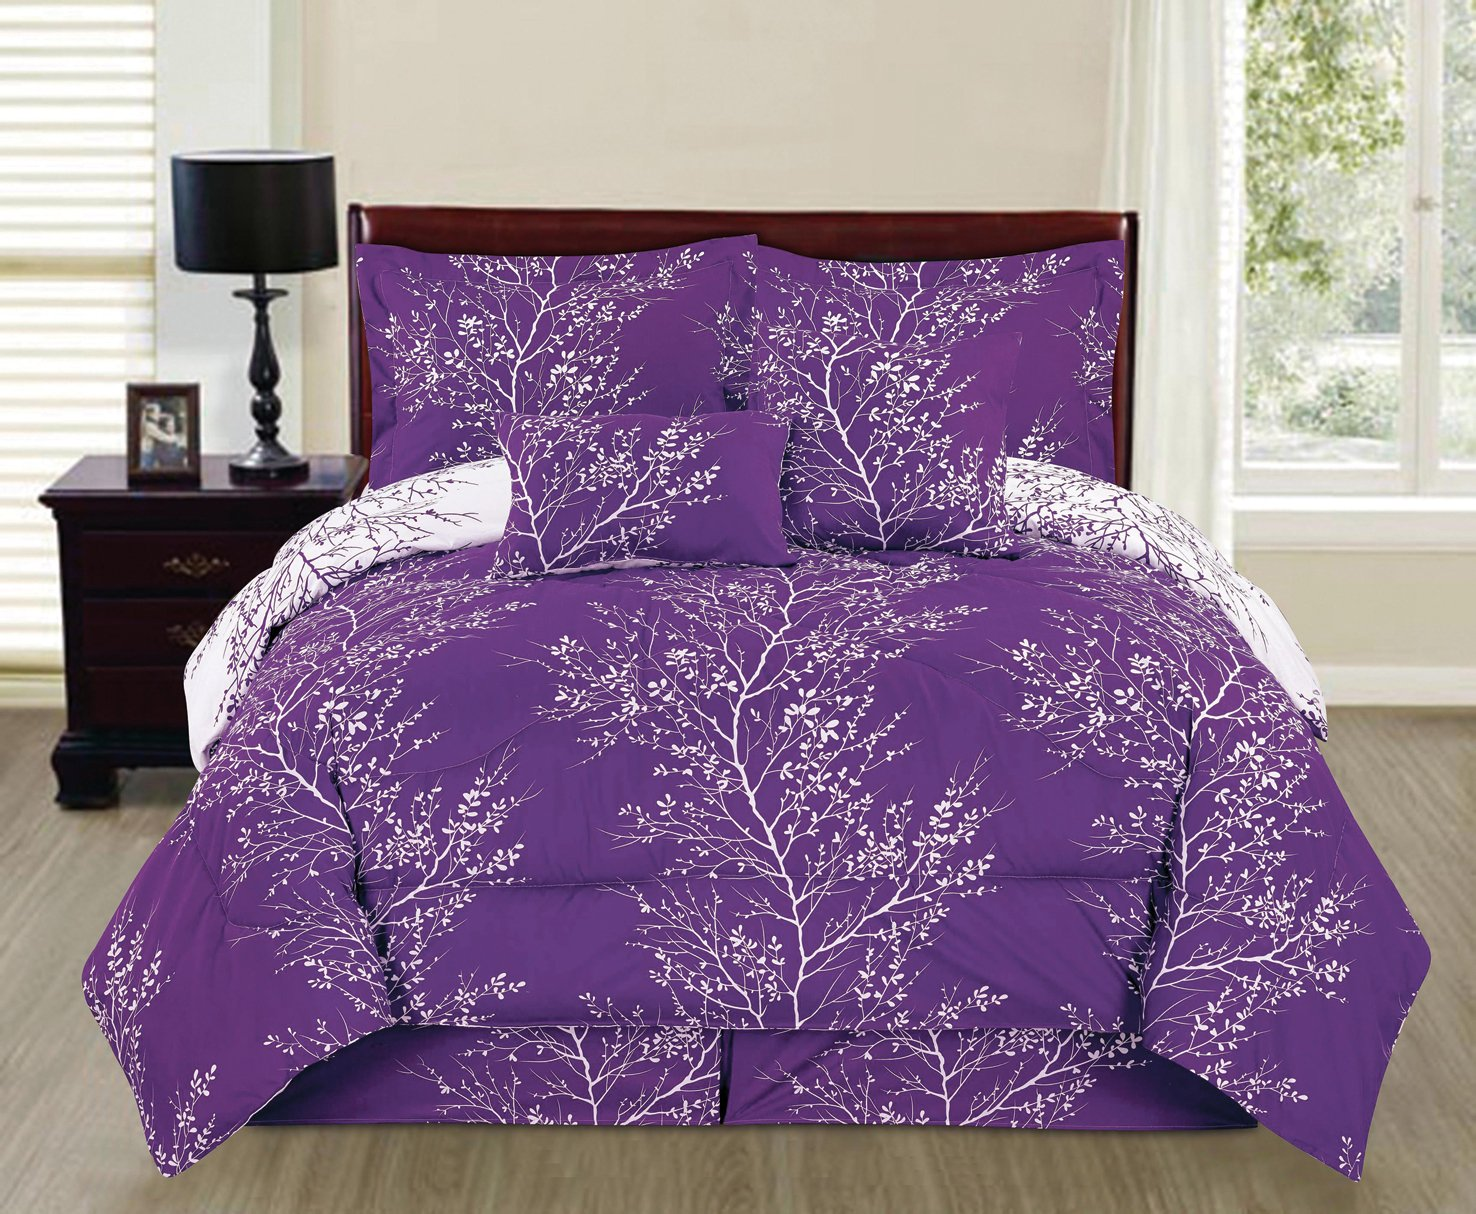 6 Piece Reversible Branches Comforter Set New Bedding (Queen, Purple